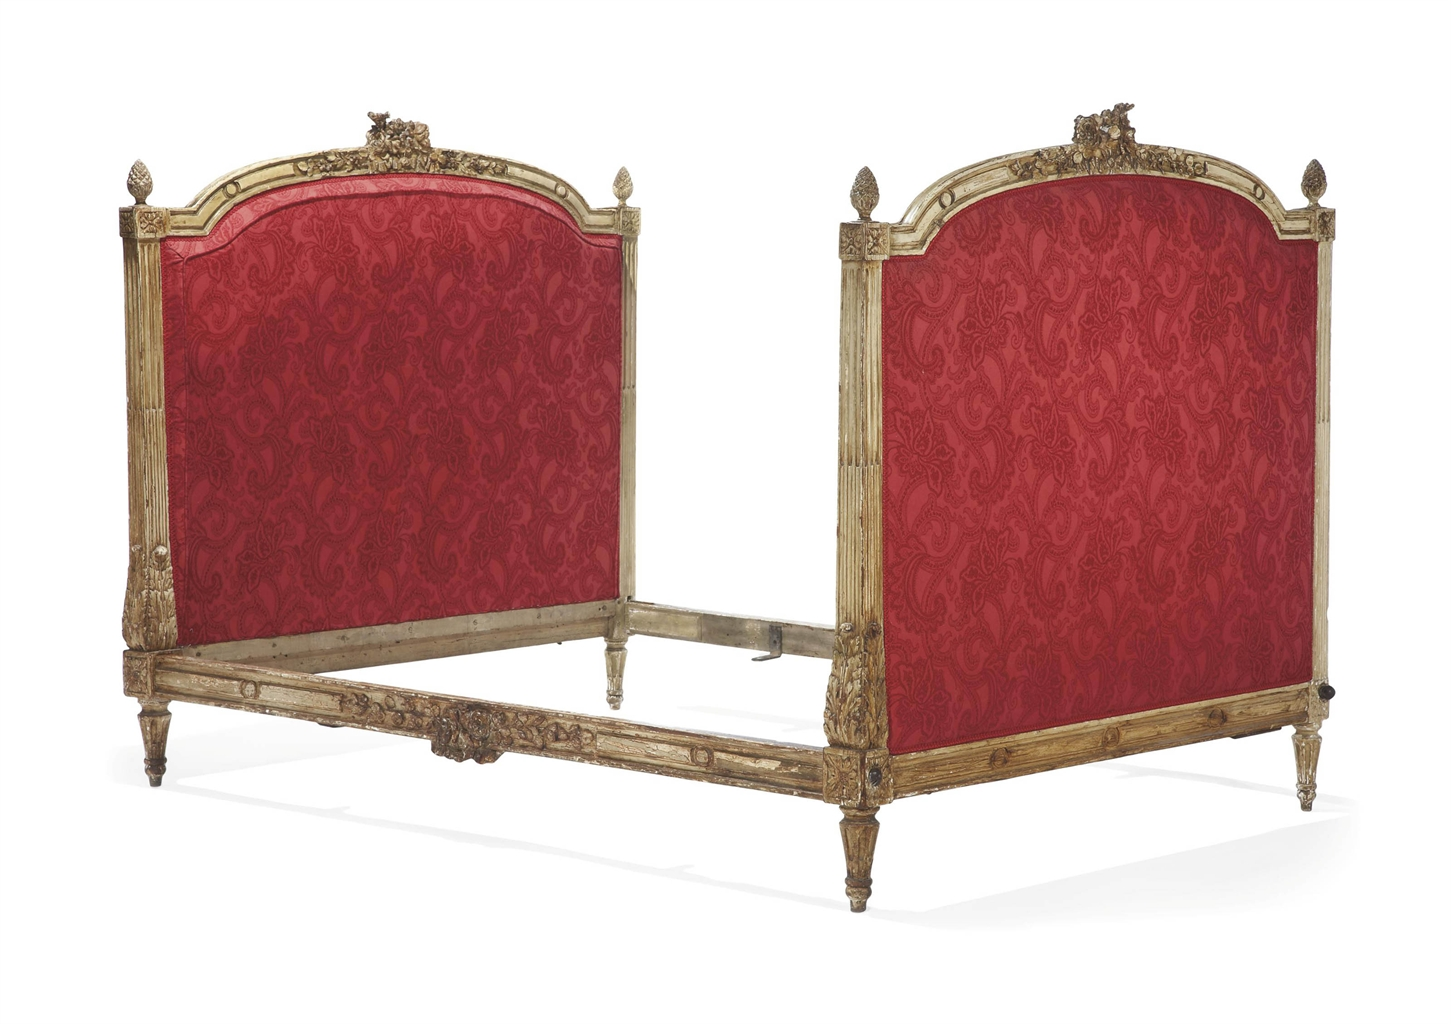 lit d 39 epoque louis xvi estampille de pierre magdeleine pluvinet troisieme quart du xviiieme. Black Bedroom Furniture Sets. Home Design Ideas